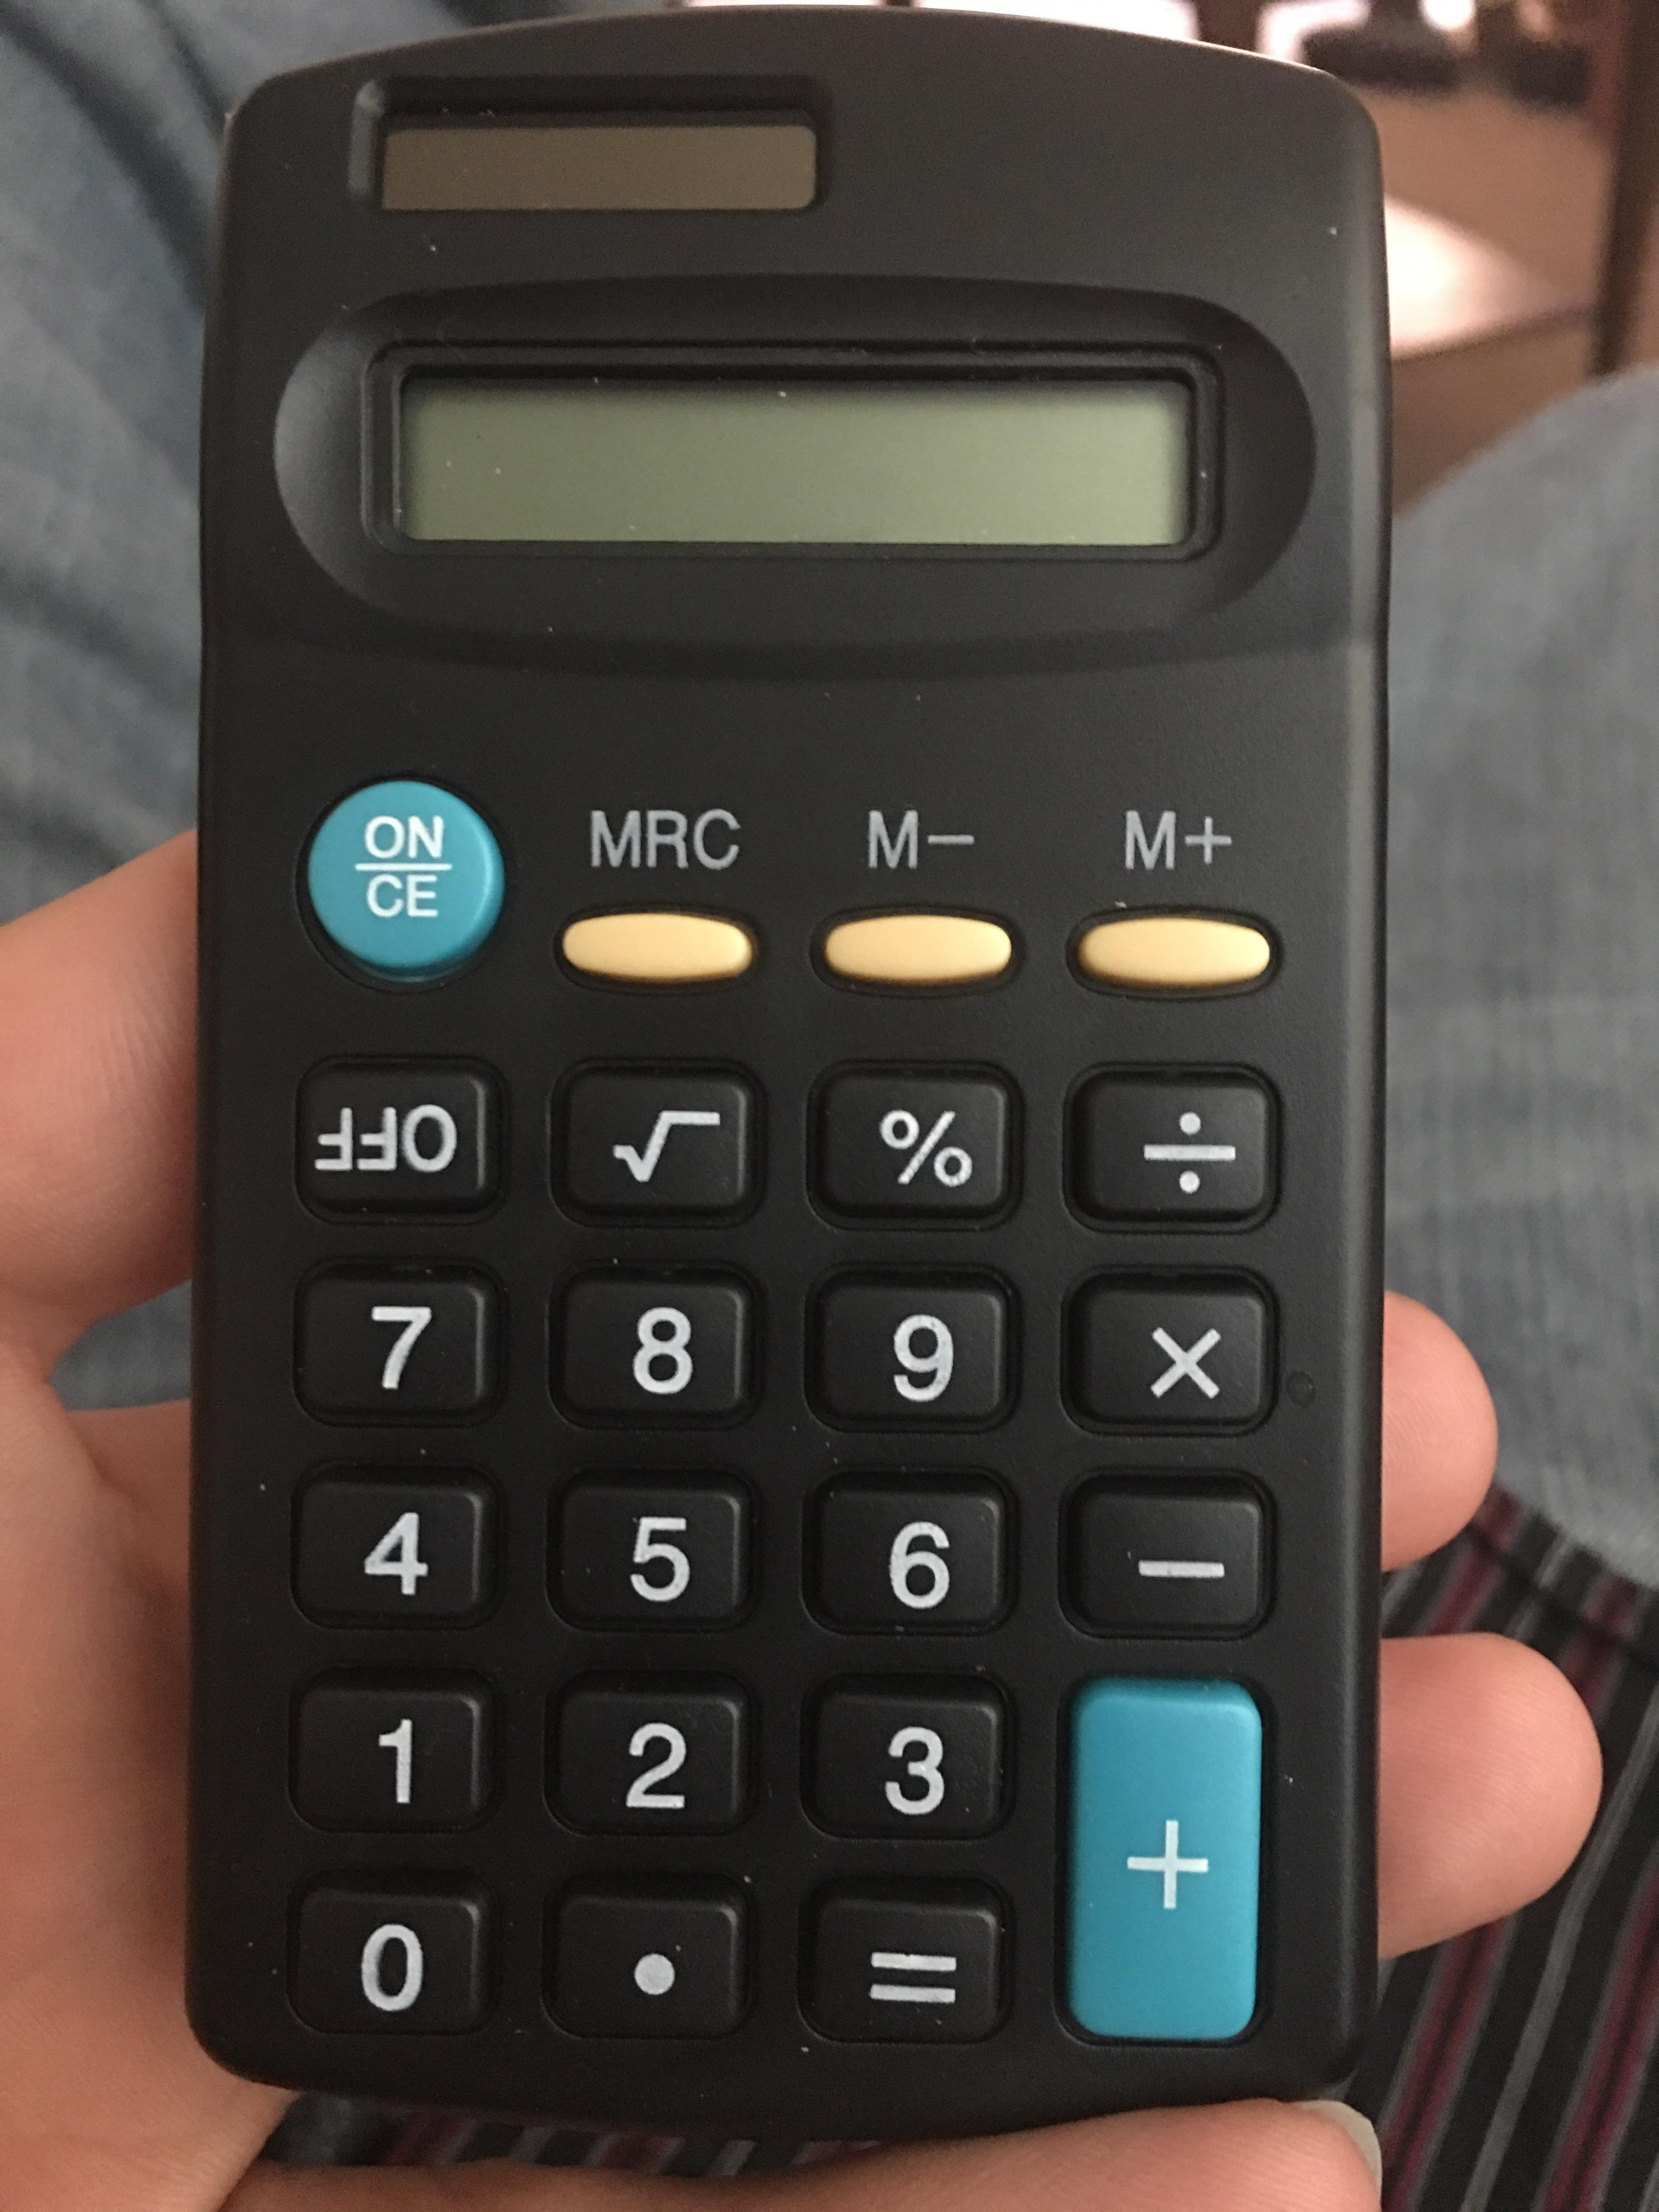 The Off Button On My Calculator Is Upside Down